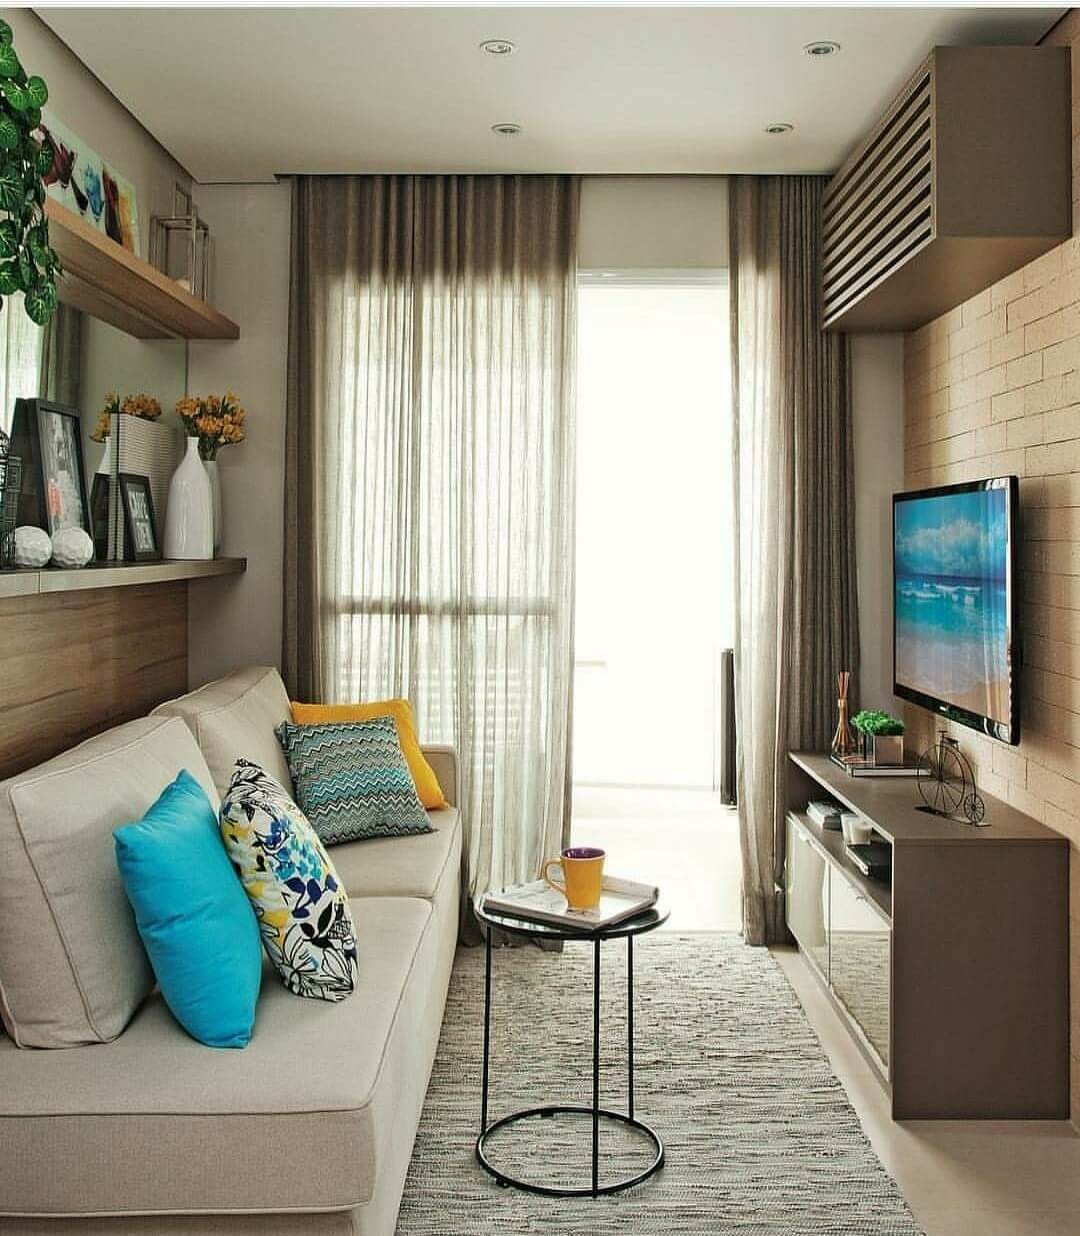 Tall Curtains Bring Height to the Room